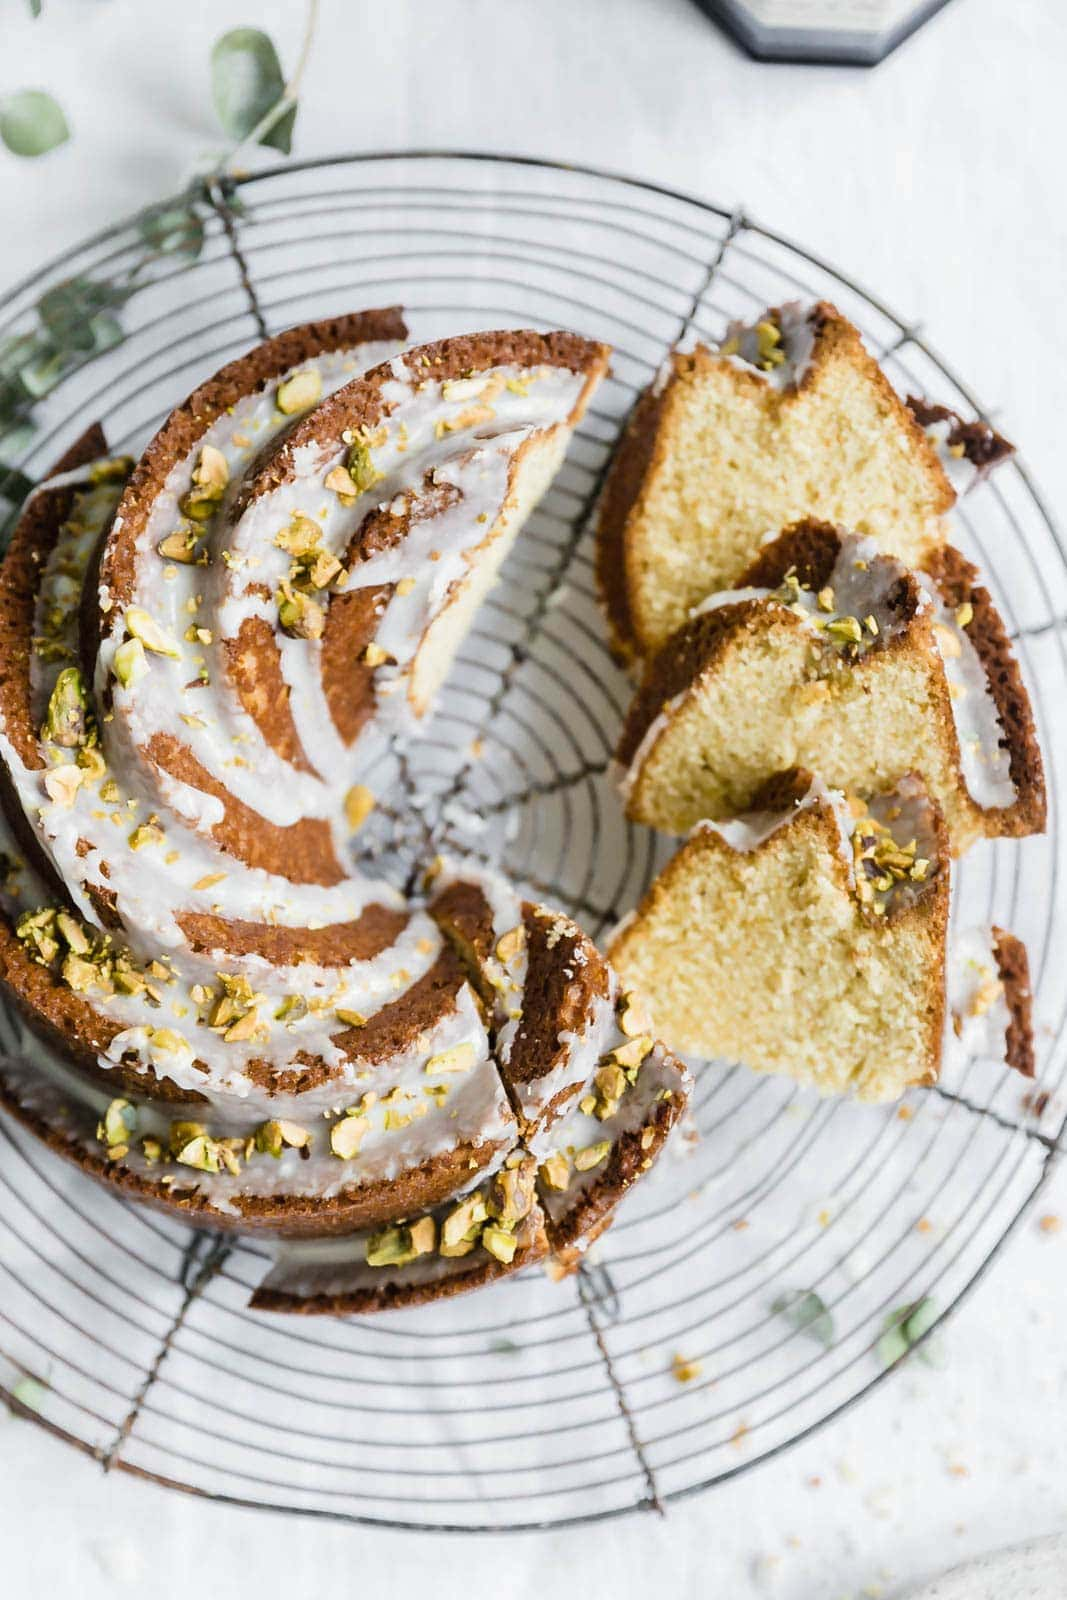 A super moist olive oil cake with pistachios and lemon makes for a luxurious weekend treat. The olive oil imparts the most delicious flavor!